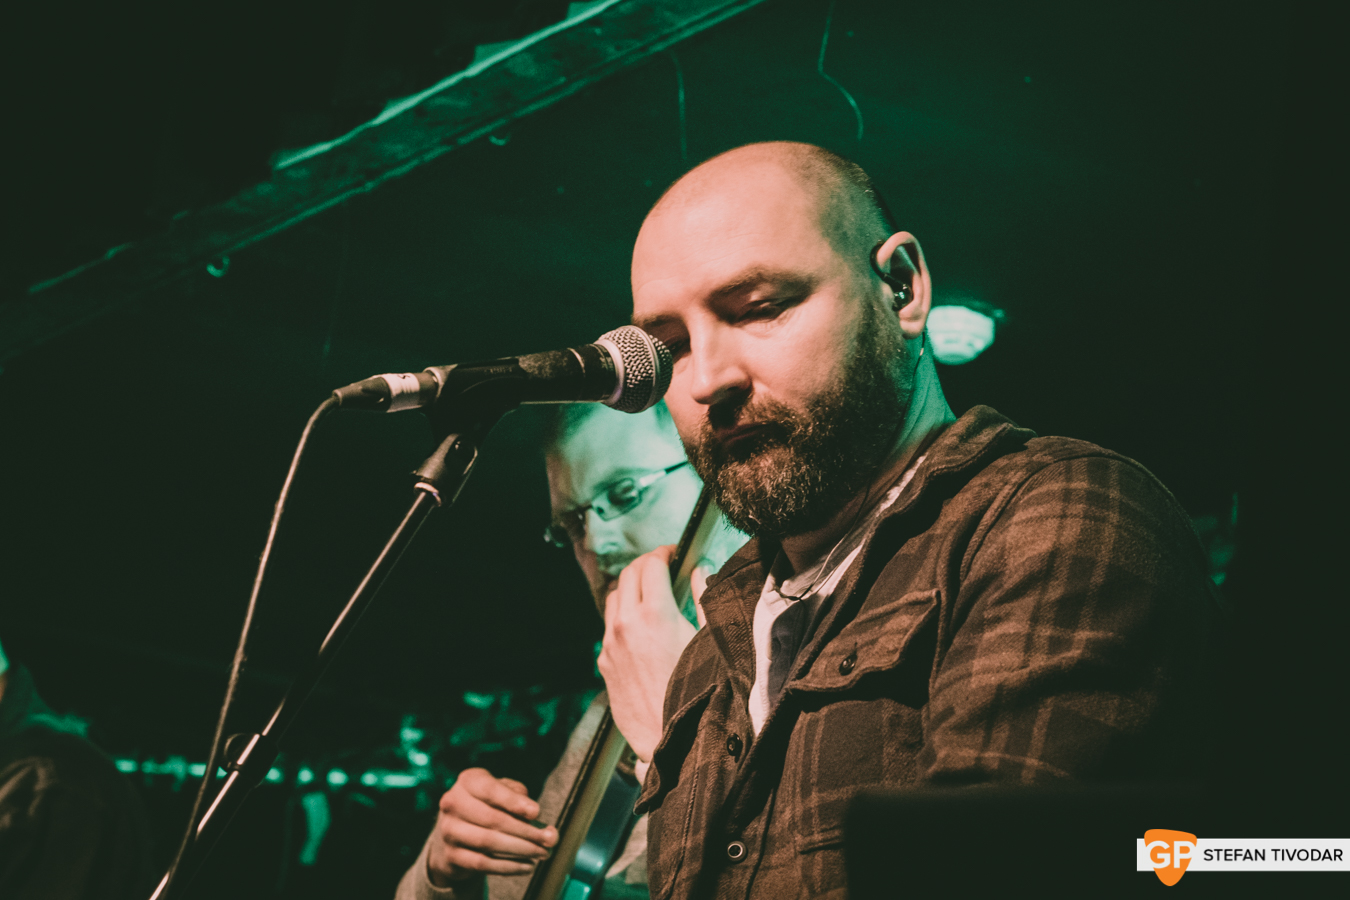 Runabay Whelans Ones to Watch Winter 2019 Day Whelans Ones to Watch Winter 2019 Day 5 4